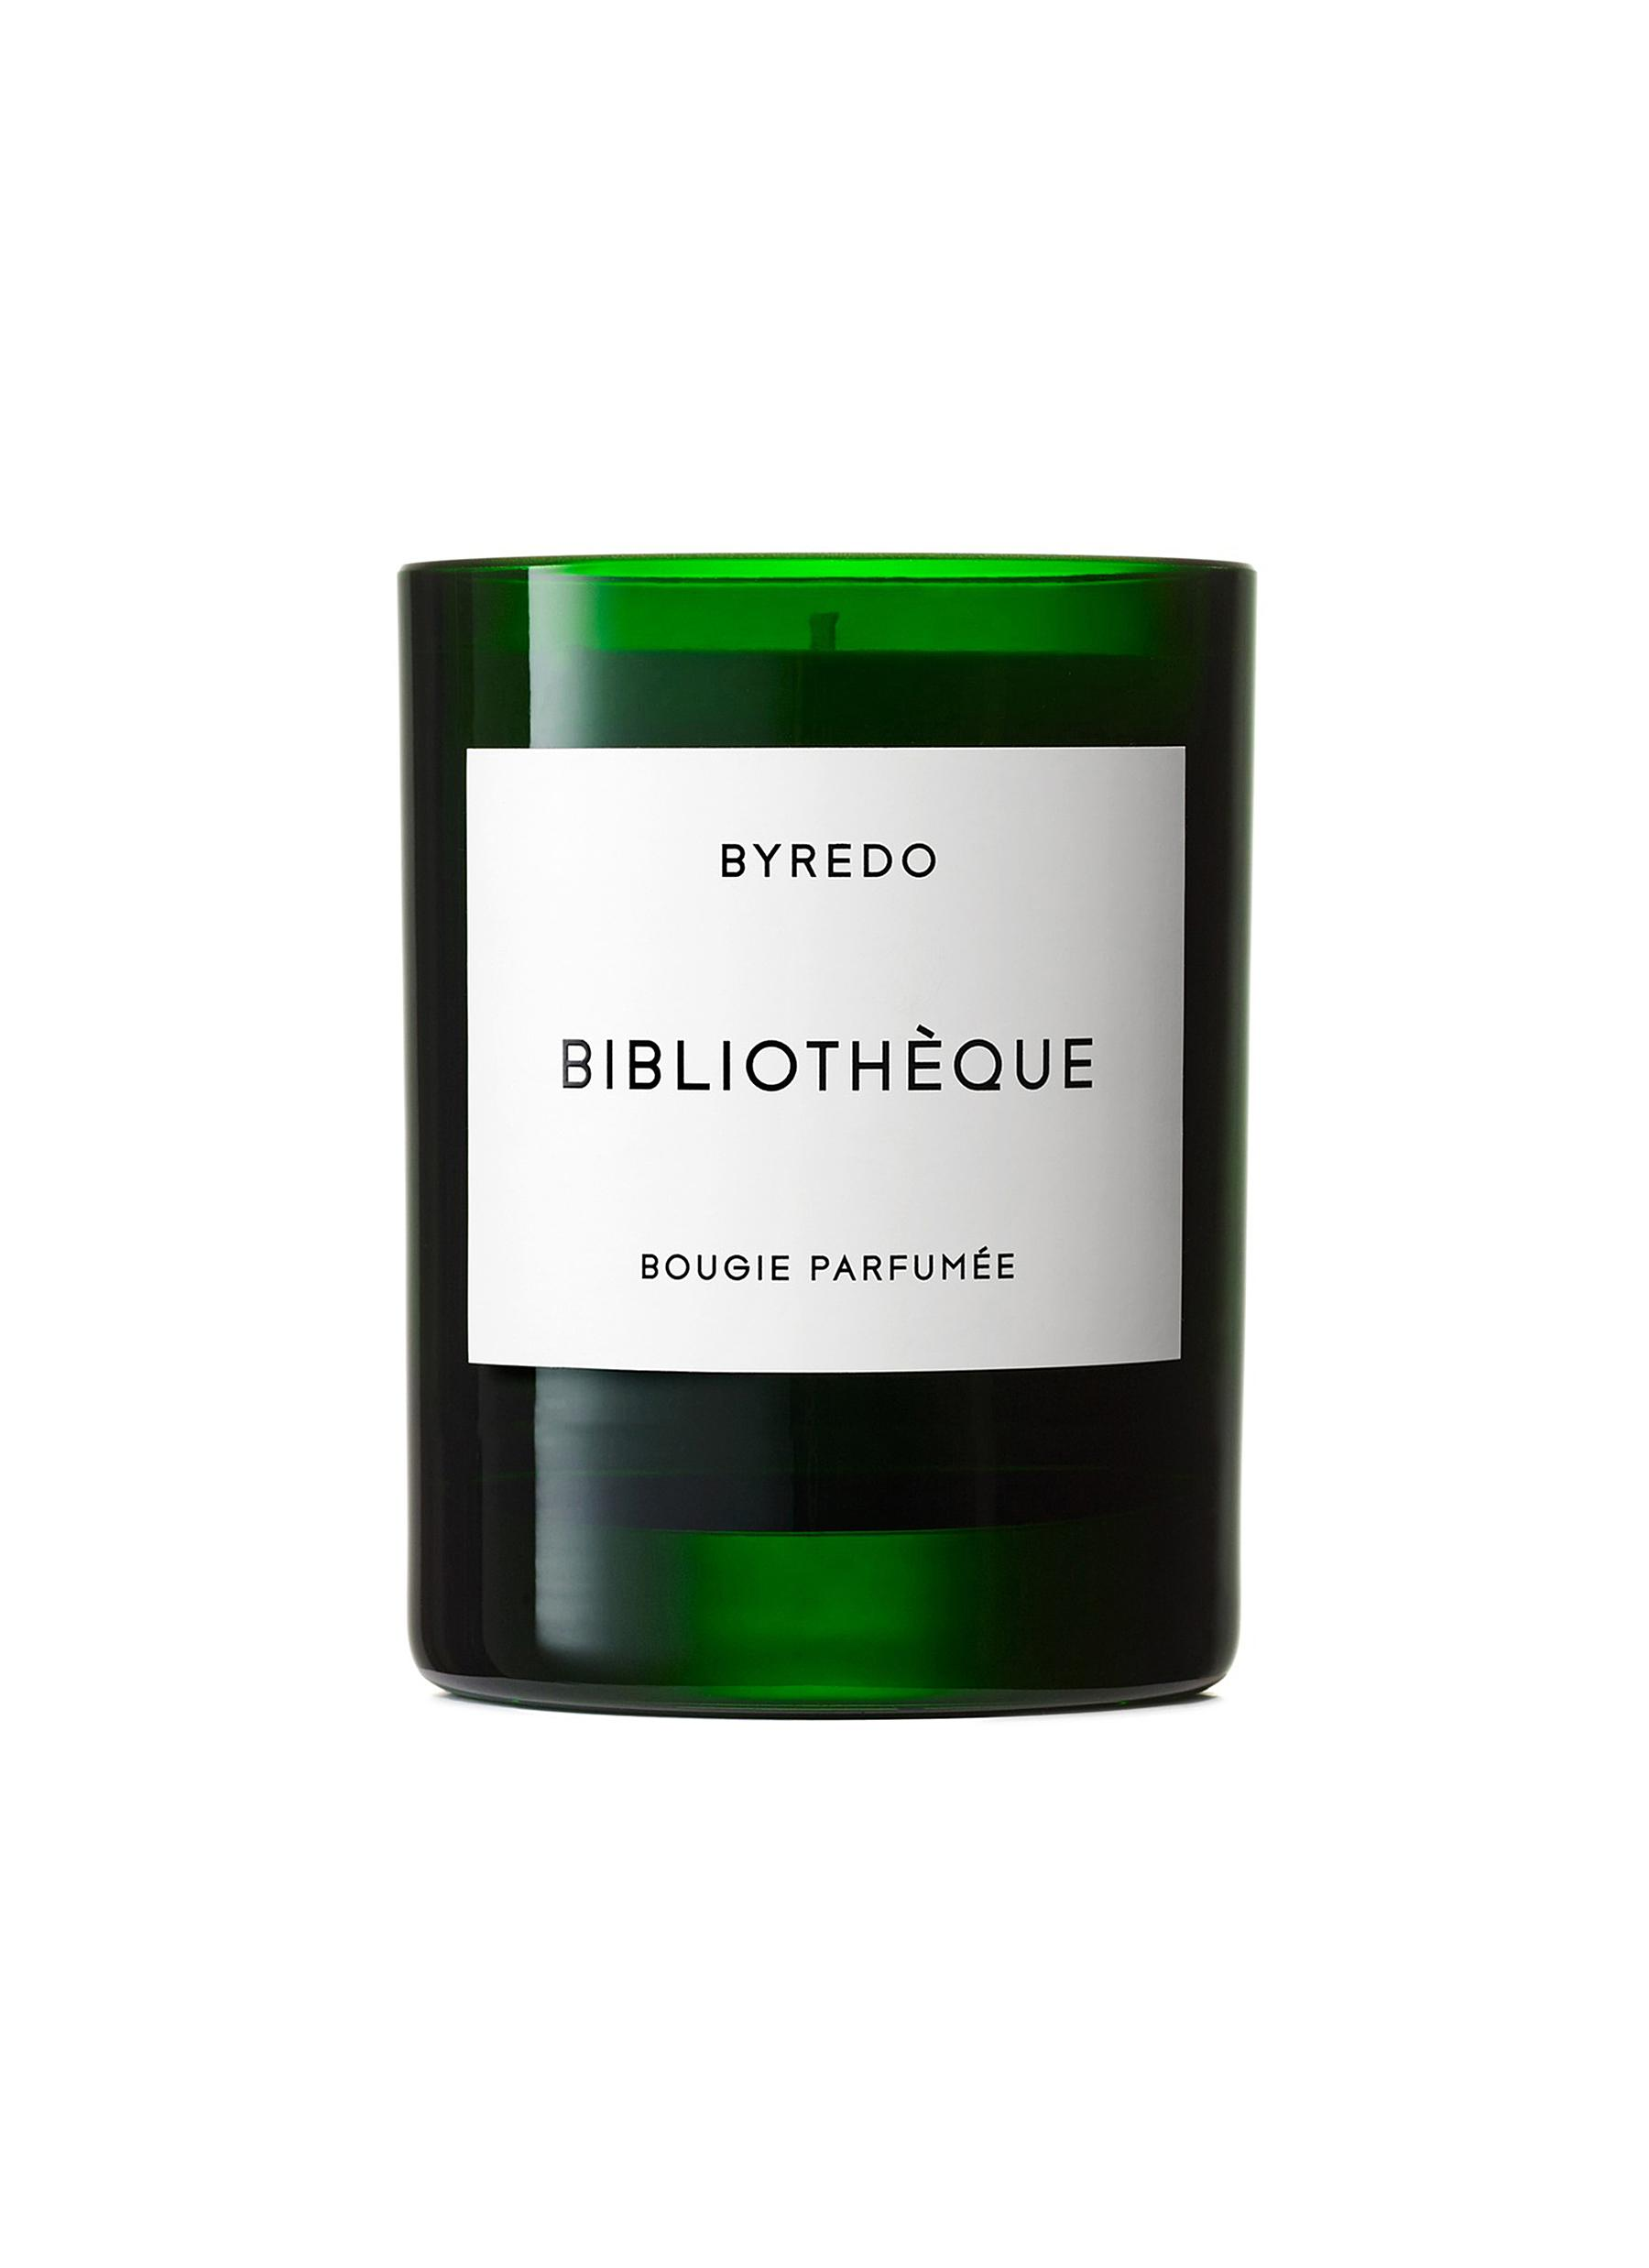 Bibliothéque fragranced 2016 holiday candle 240g by BYREDO